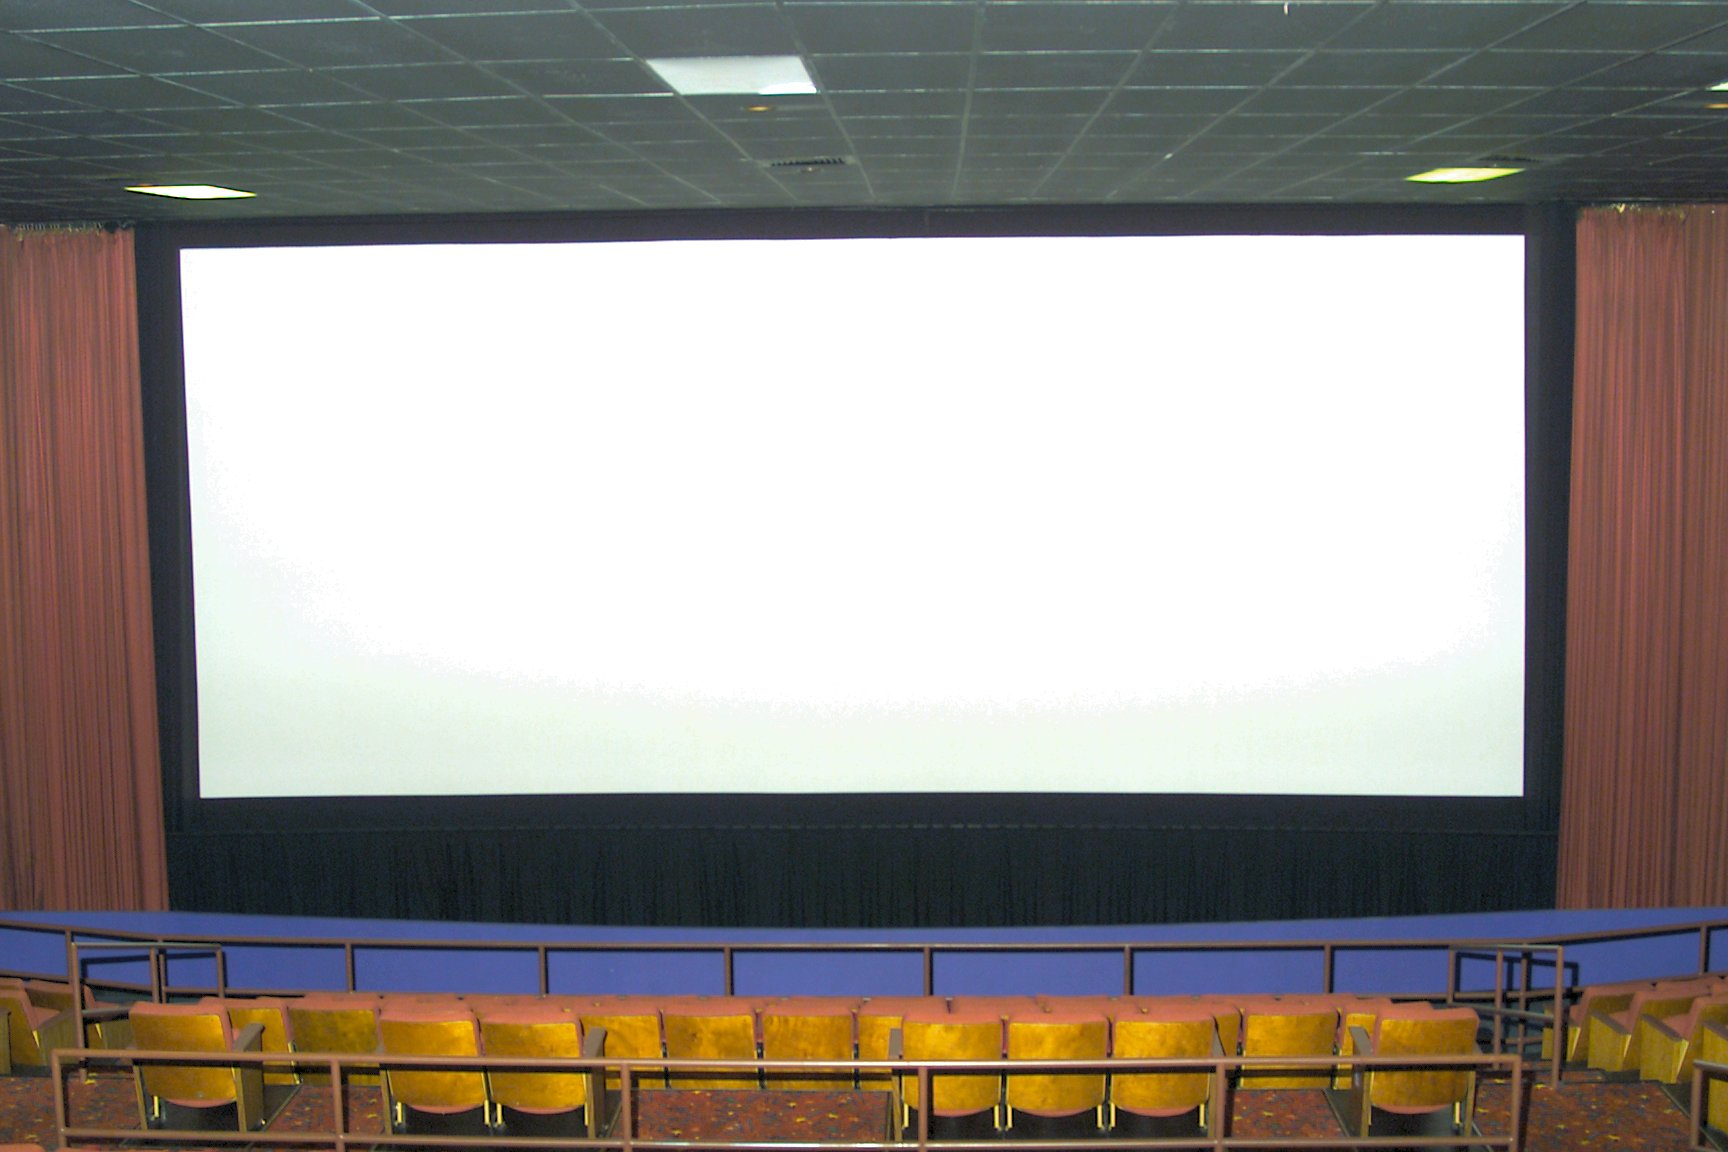 Movie Screen Clipart - Clipart Suggest